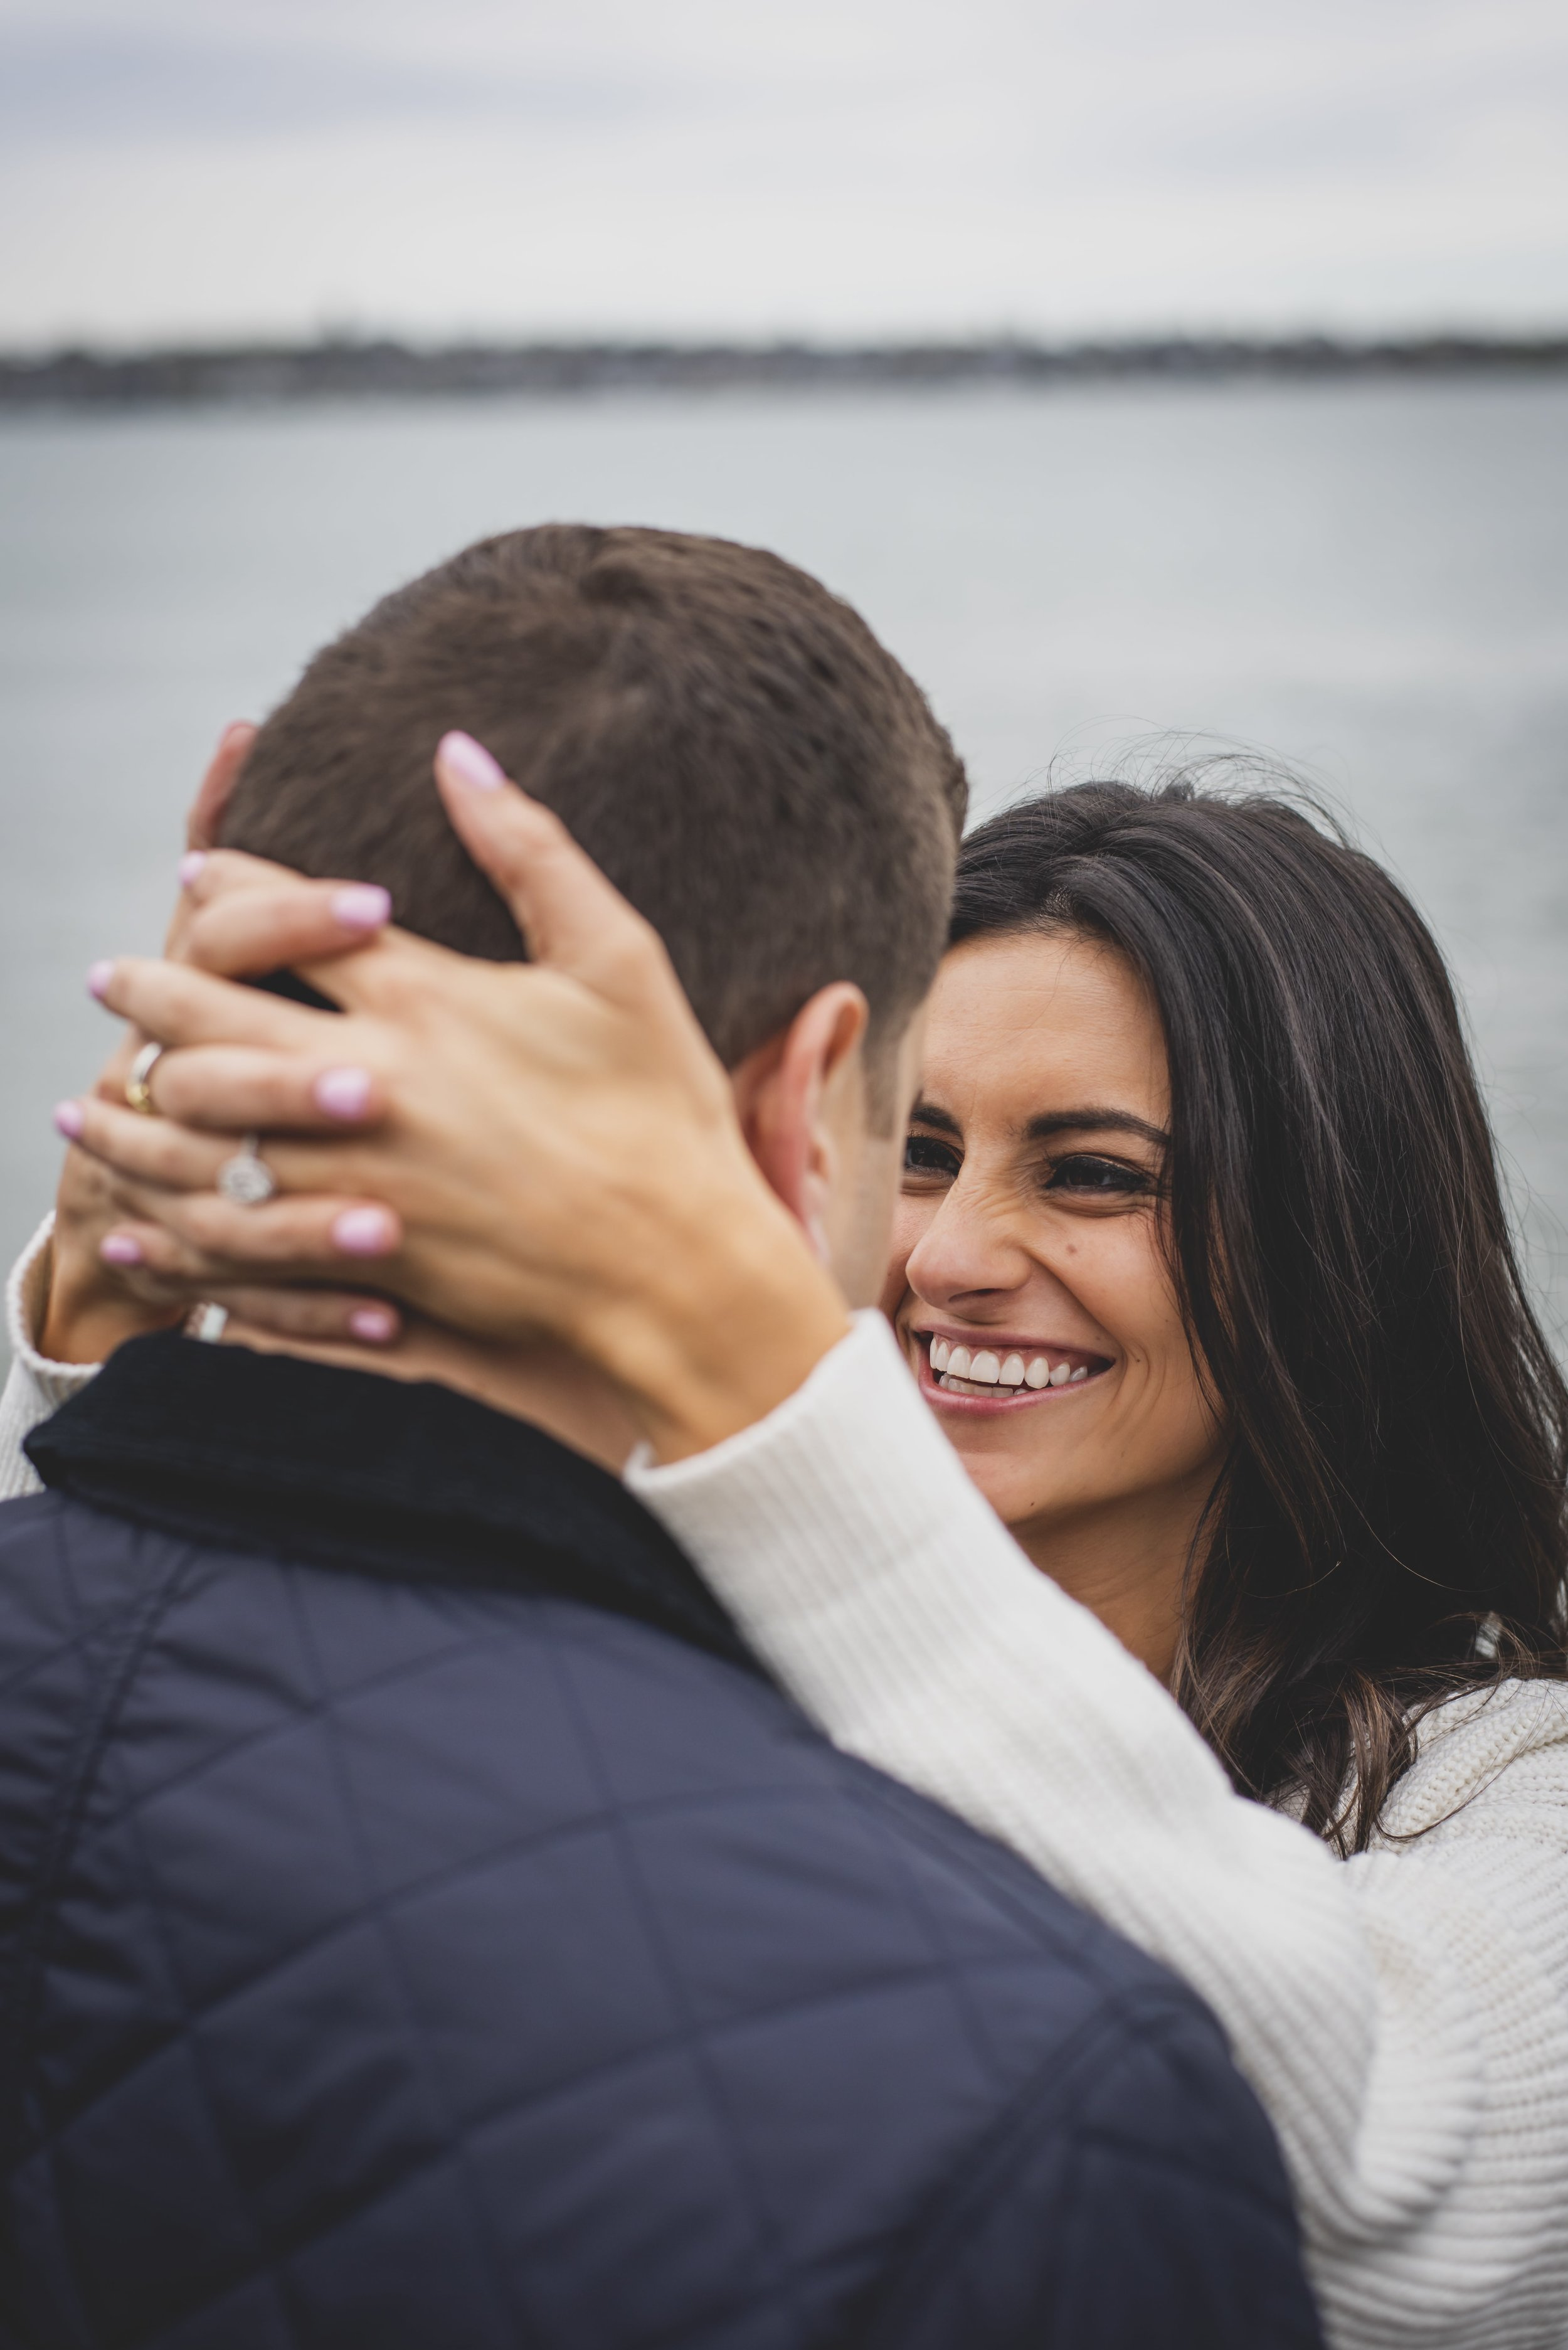 Engagement Photography Services - Castle Hill Lighthouse, Newport, RI - Couple staring into each others eyes and laughing joyously.